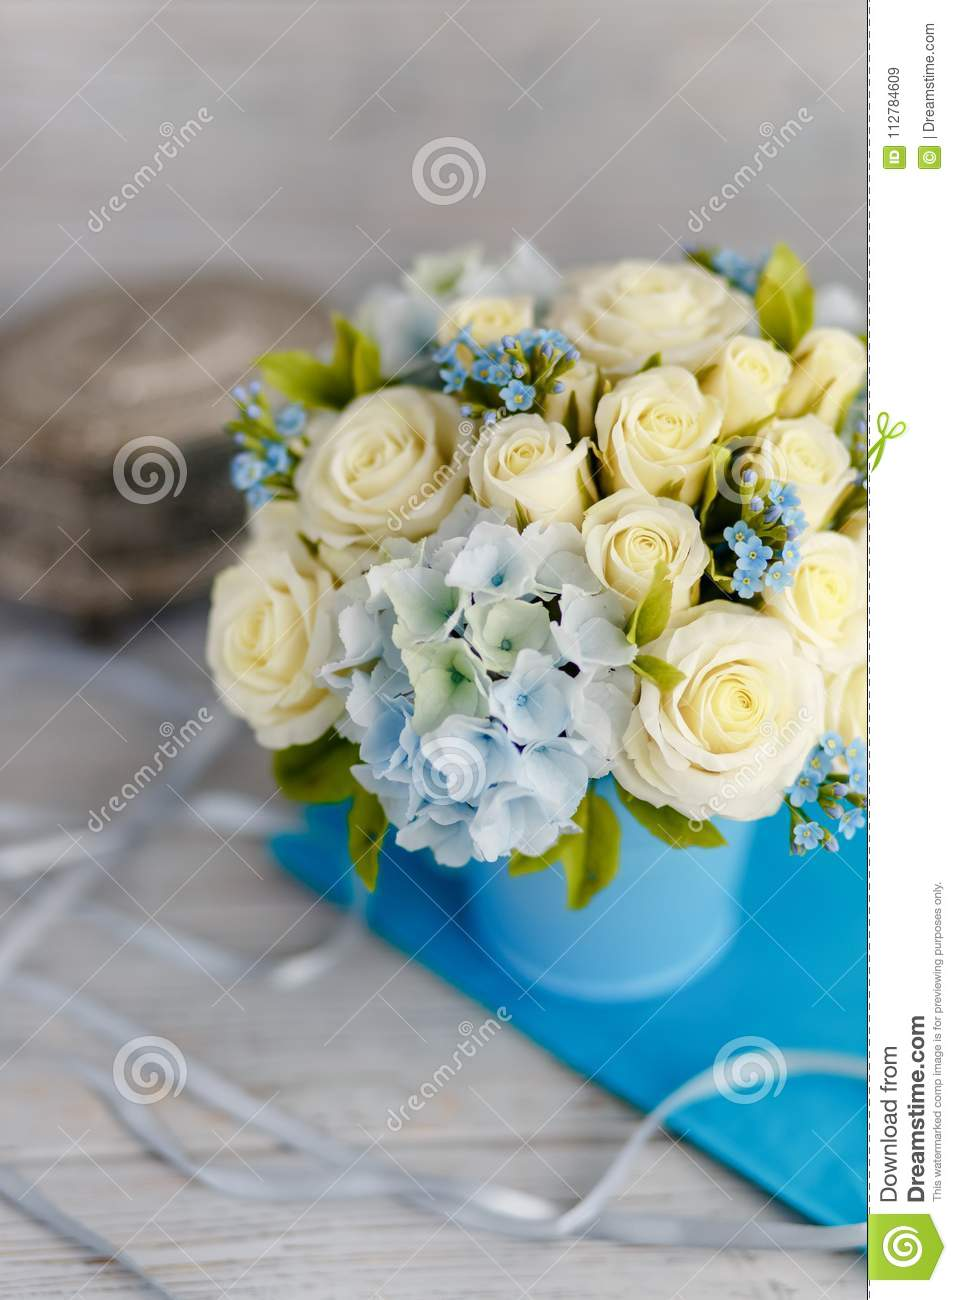 Blue And White Wedding Flowers Stock Image Image Of Confetti